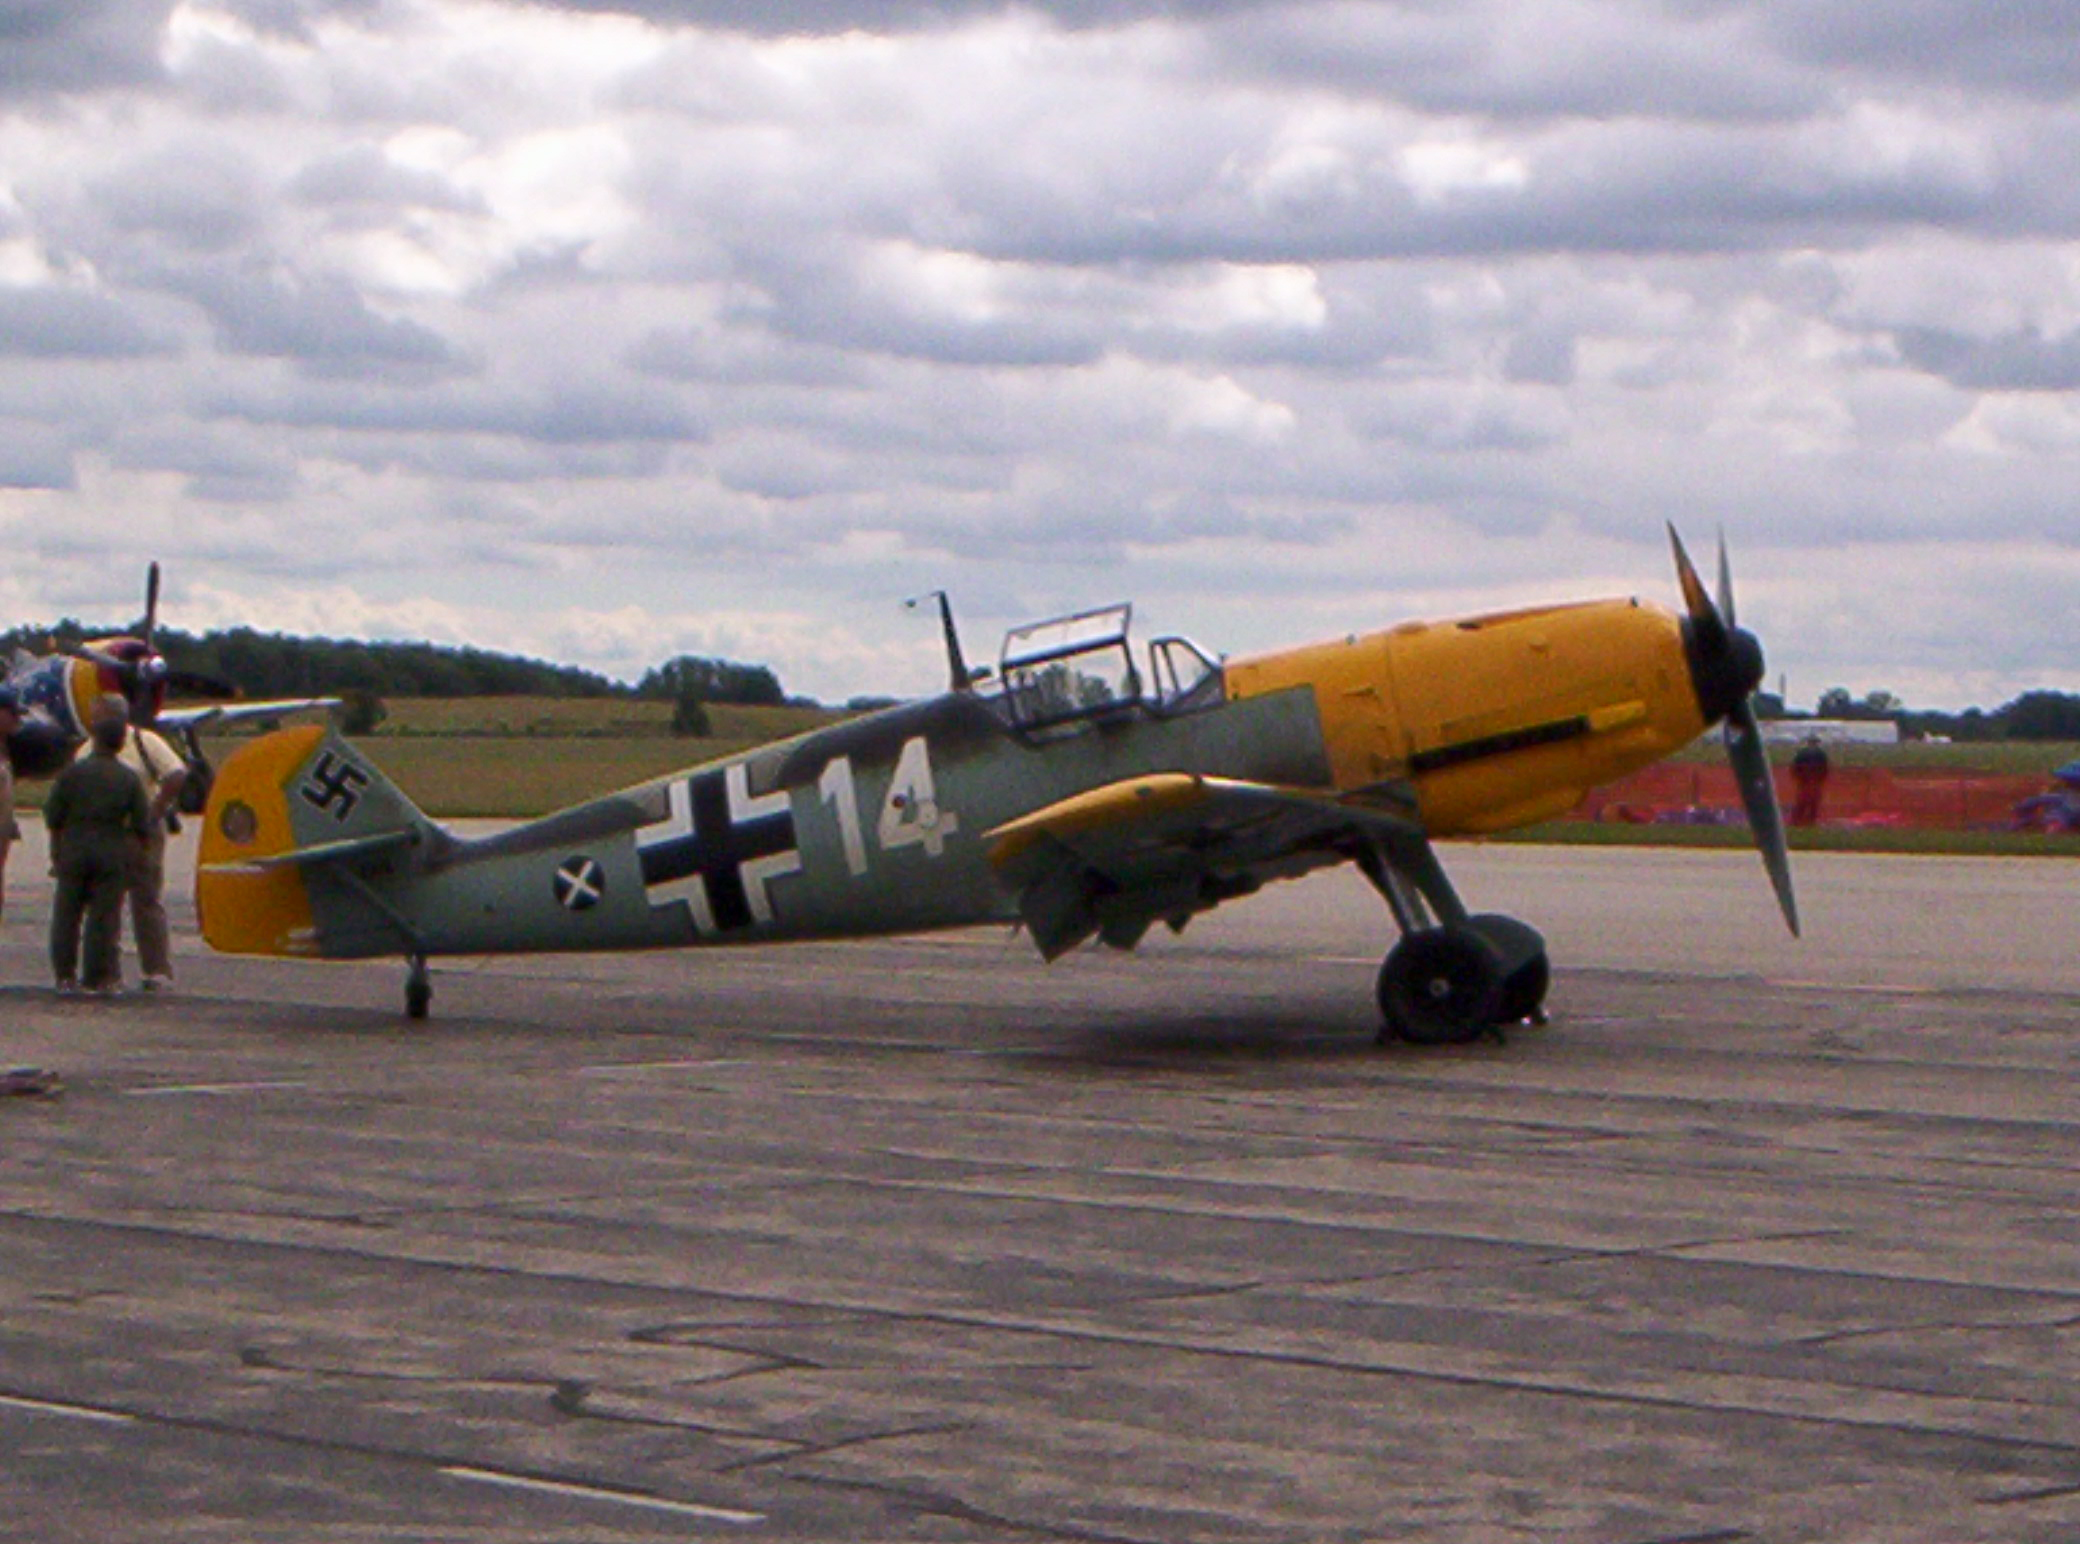 A restored Bf-109E-4, pictured at the 2008 Thunder Over Michigan Airshow. Photo source: Author.